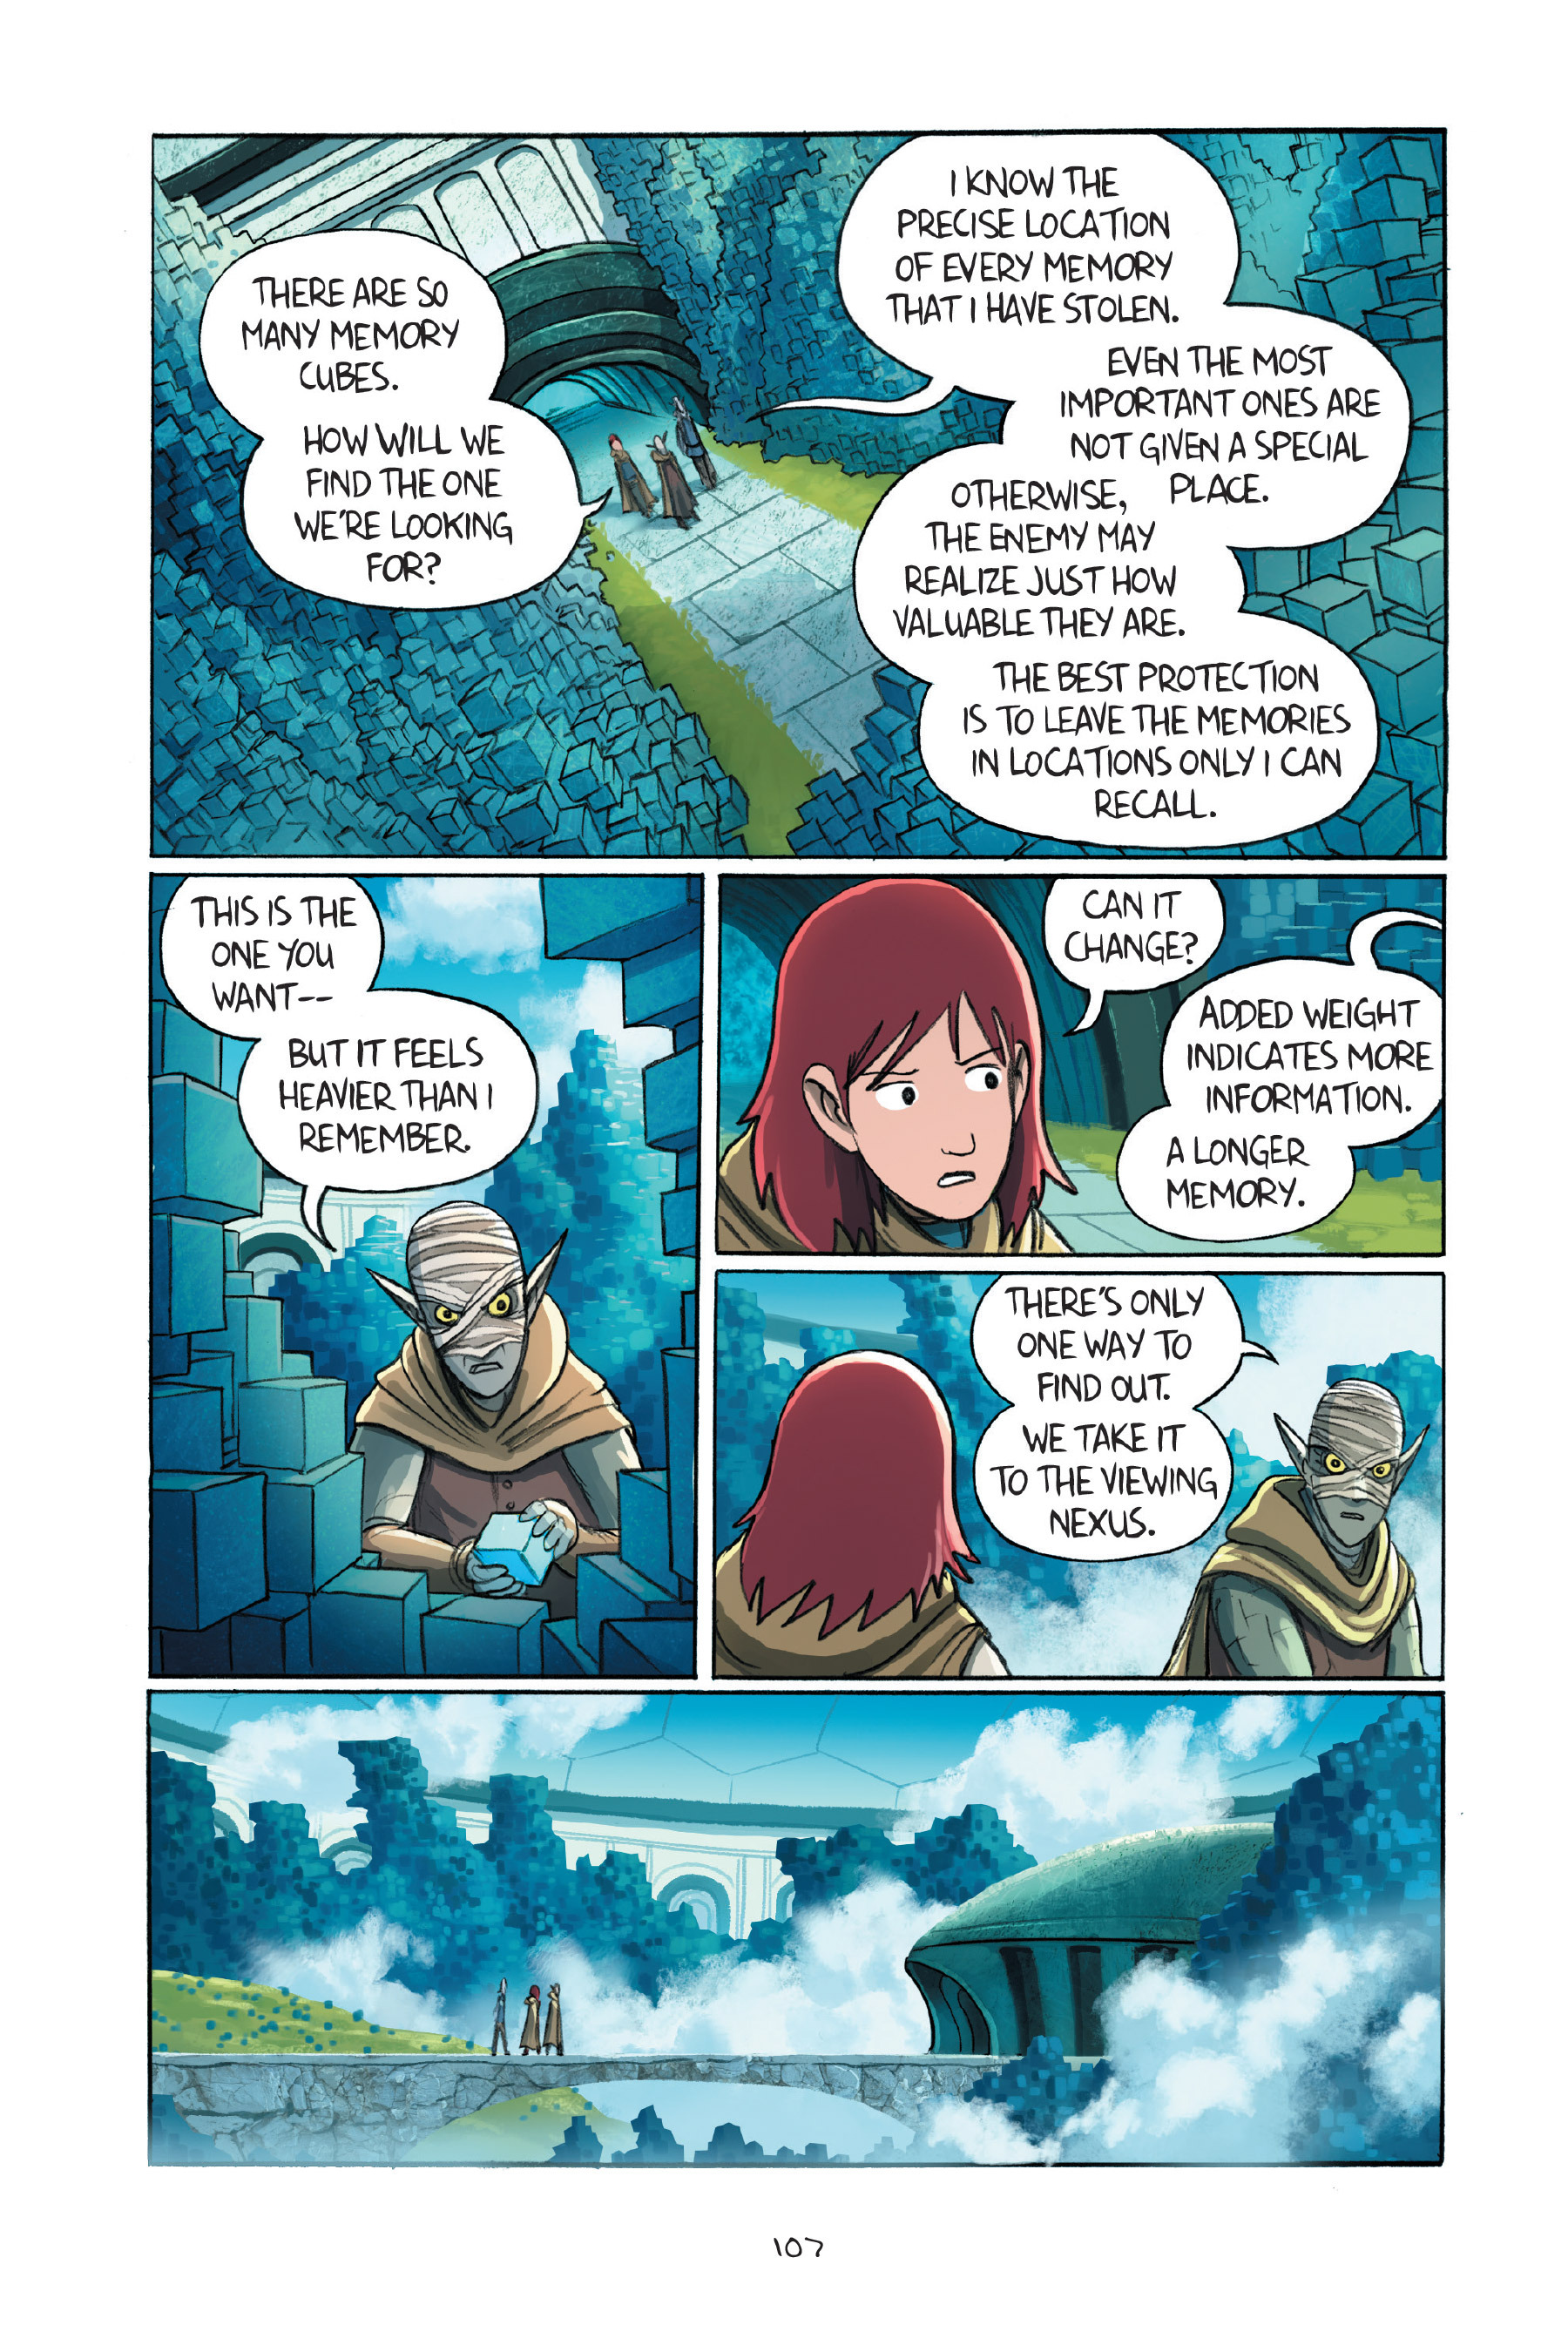 Read online Amulet comic -  Issue #7 - 107